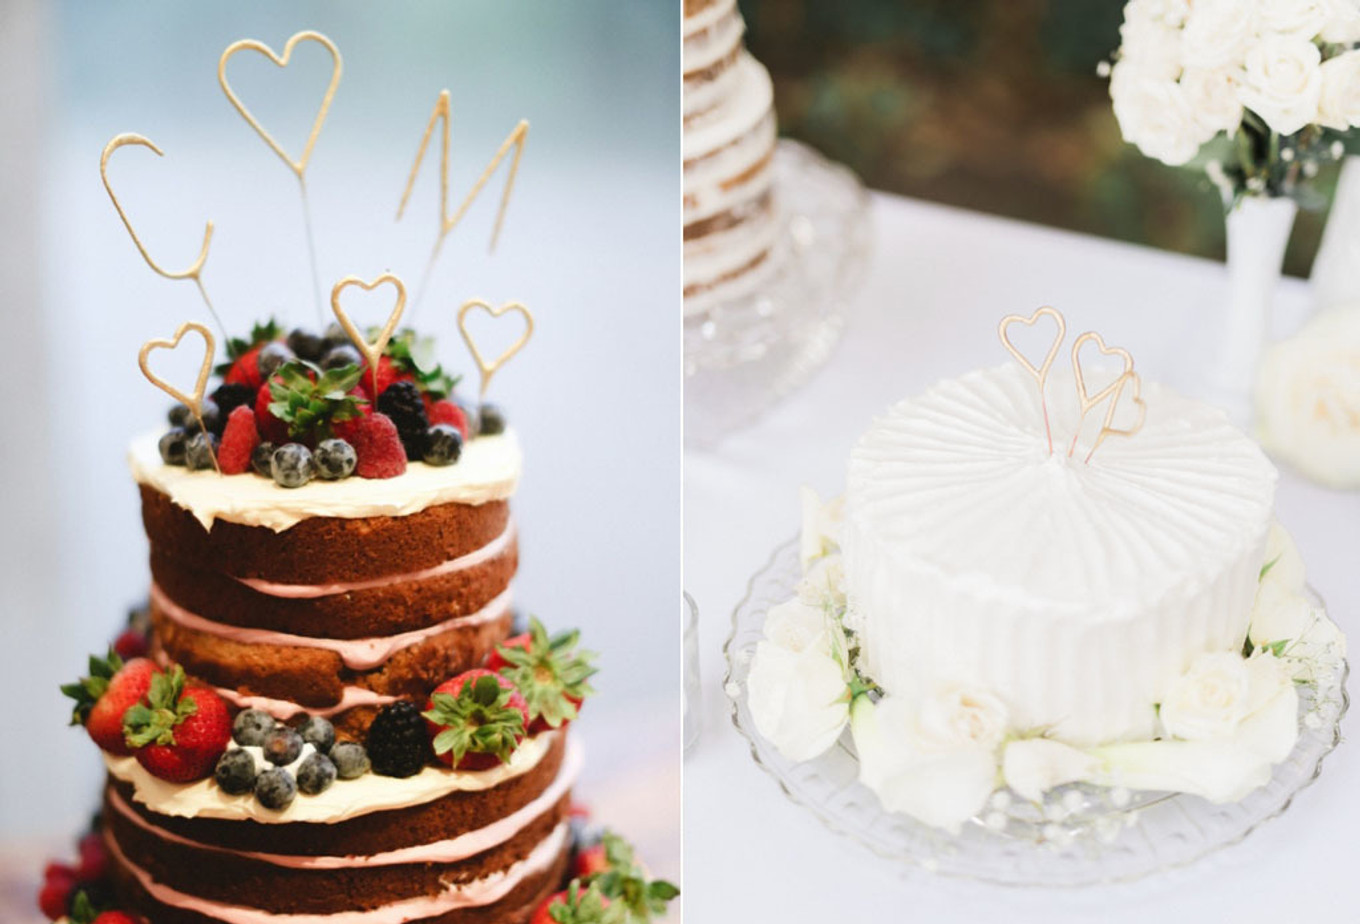 23 Delightful Cake Topper Ideas for Your Wedding - Bridestory Blog